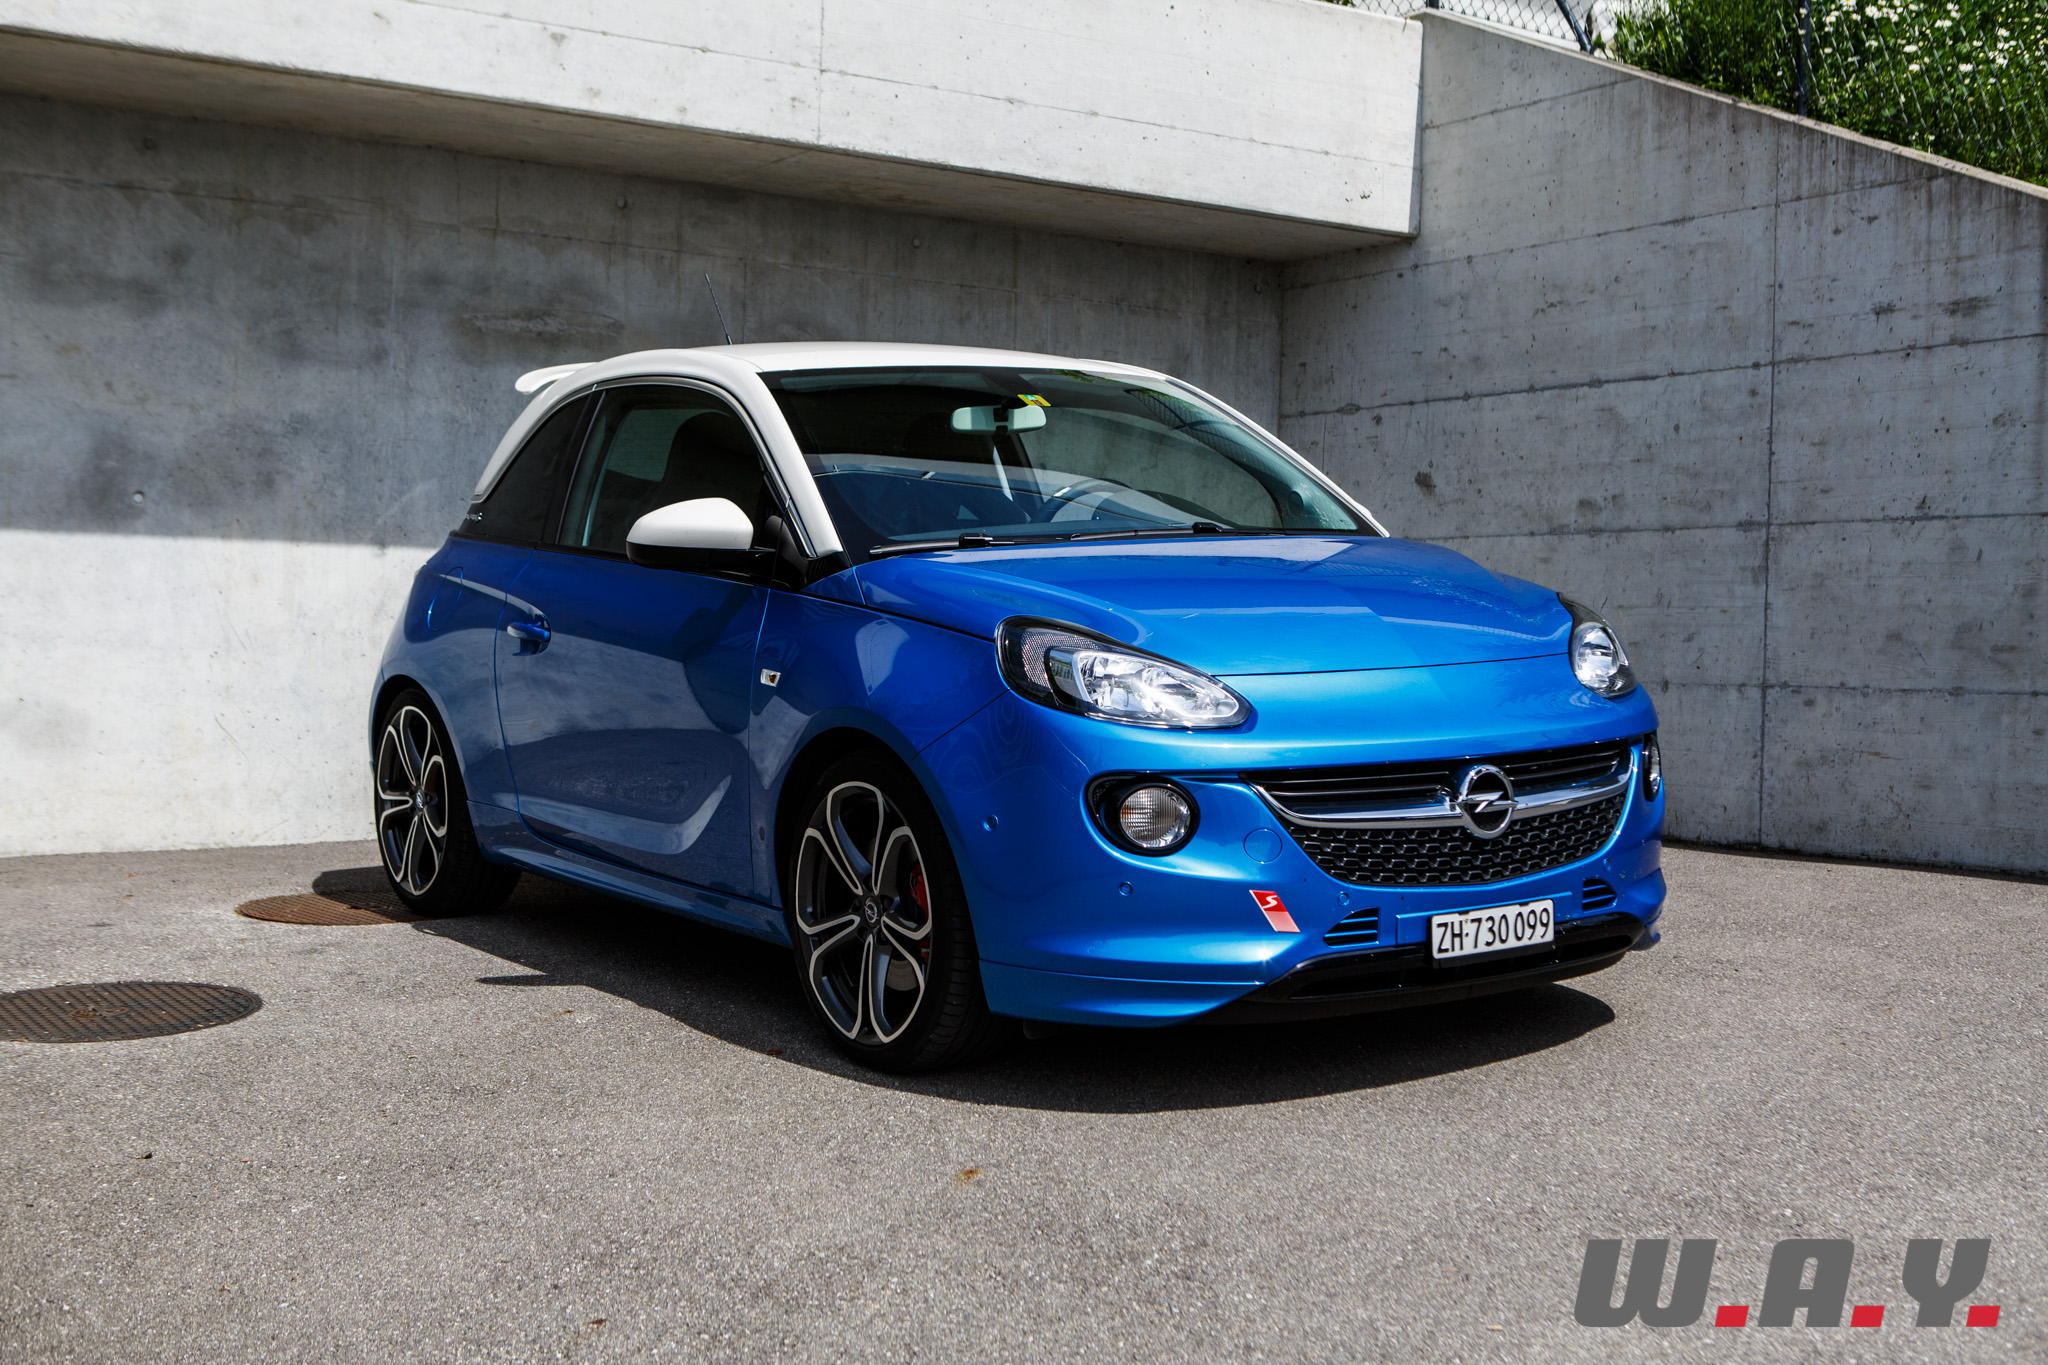 essai opel adam s une petite bombe parfaitement ma tris e wheels and. Black Bedroom Furniture Sets. Home Design Ideas